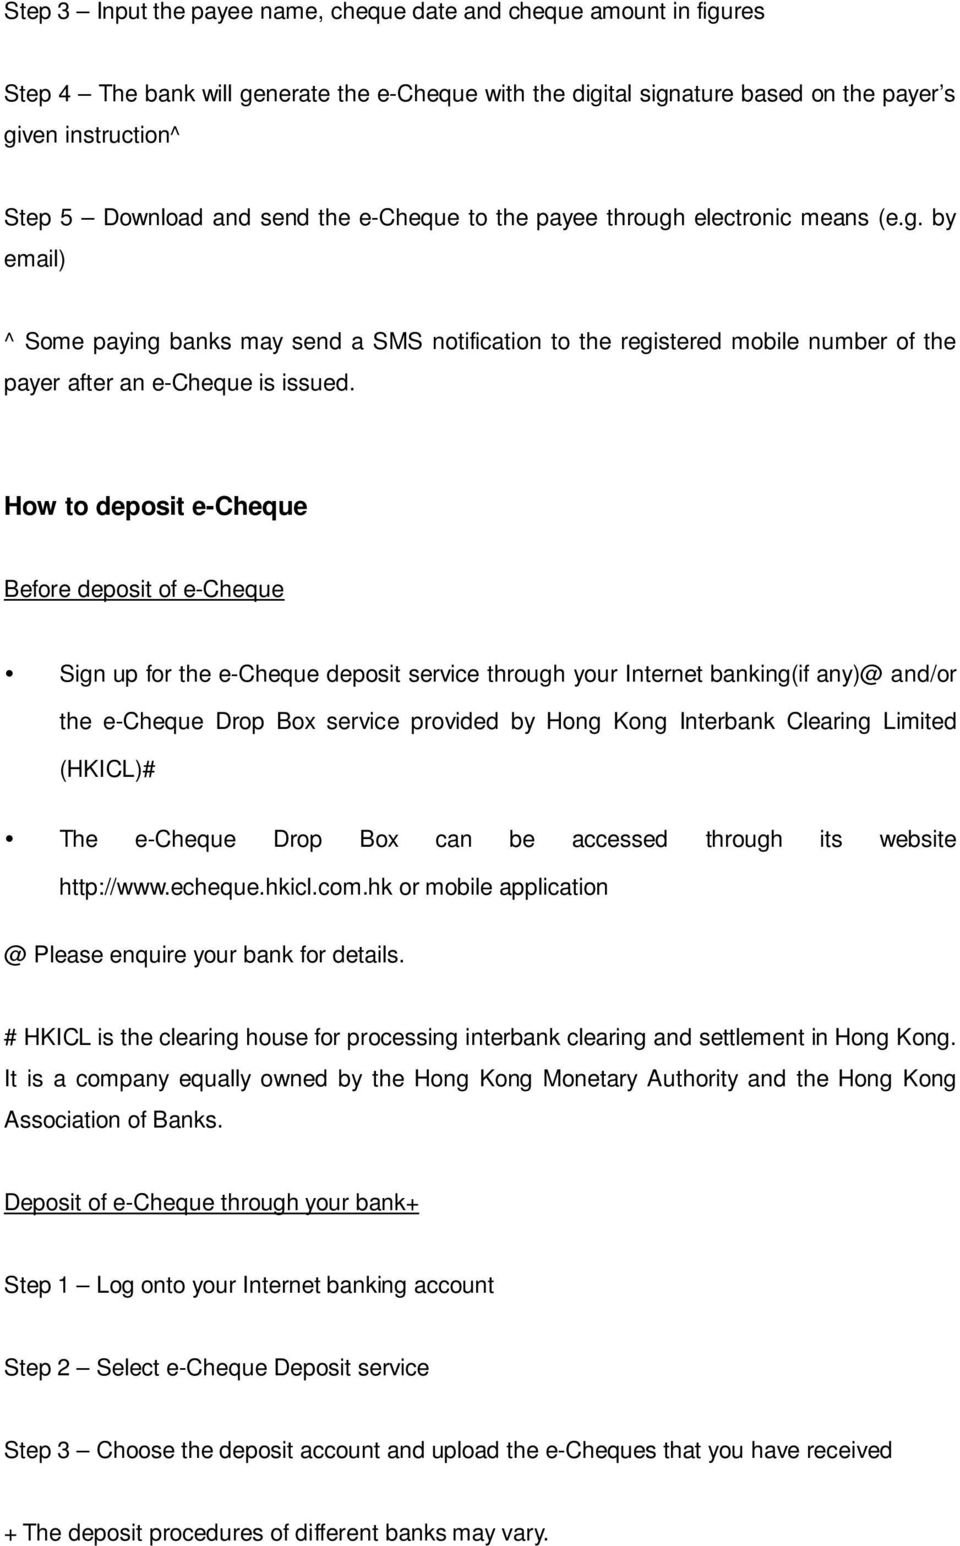 How to deposit e-cheque Before deposit of e-cheque Sign up for the e-cheque deposit service through your Internet banking(if any)@ and/or the e-cheque Drop Box service provided by Hong Kong Interbank